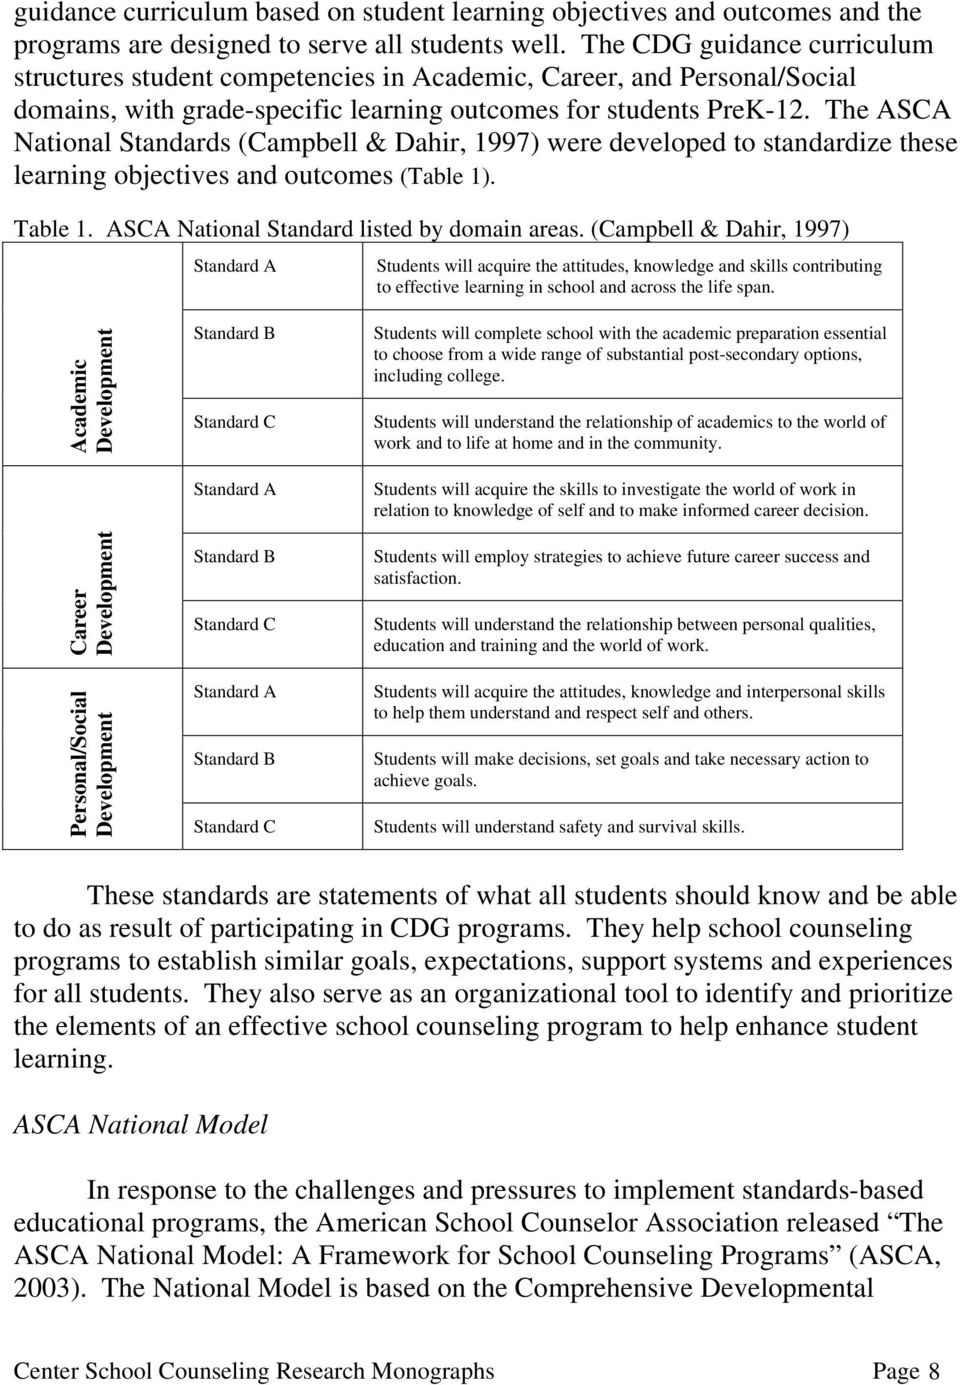 The ASCA National Standards (Campbell & Dahir, 1997) were developed to standardize these learning objectives and outcomes (Table 1). Table 1. ASCA National Standard listed by domain areas.